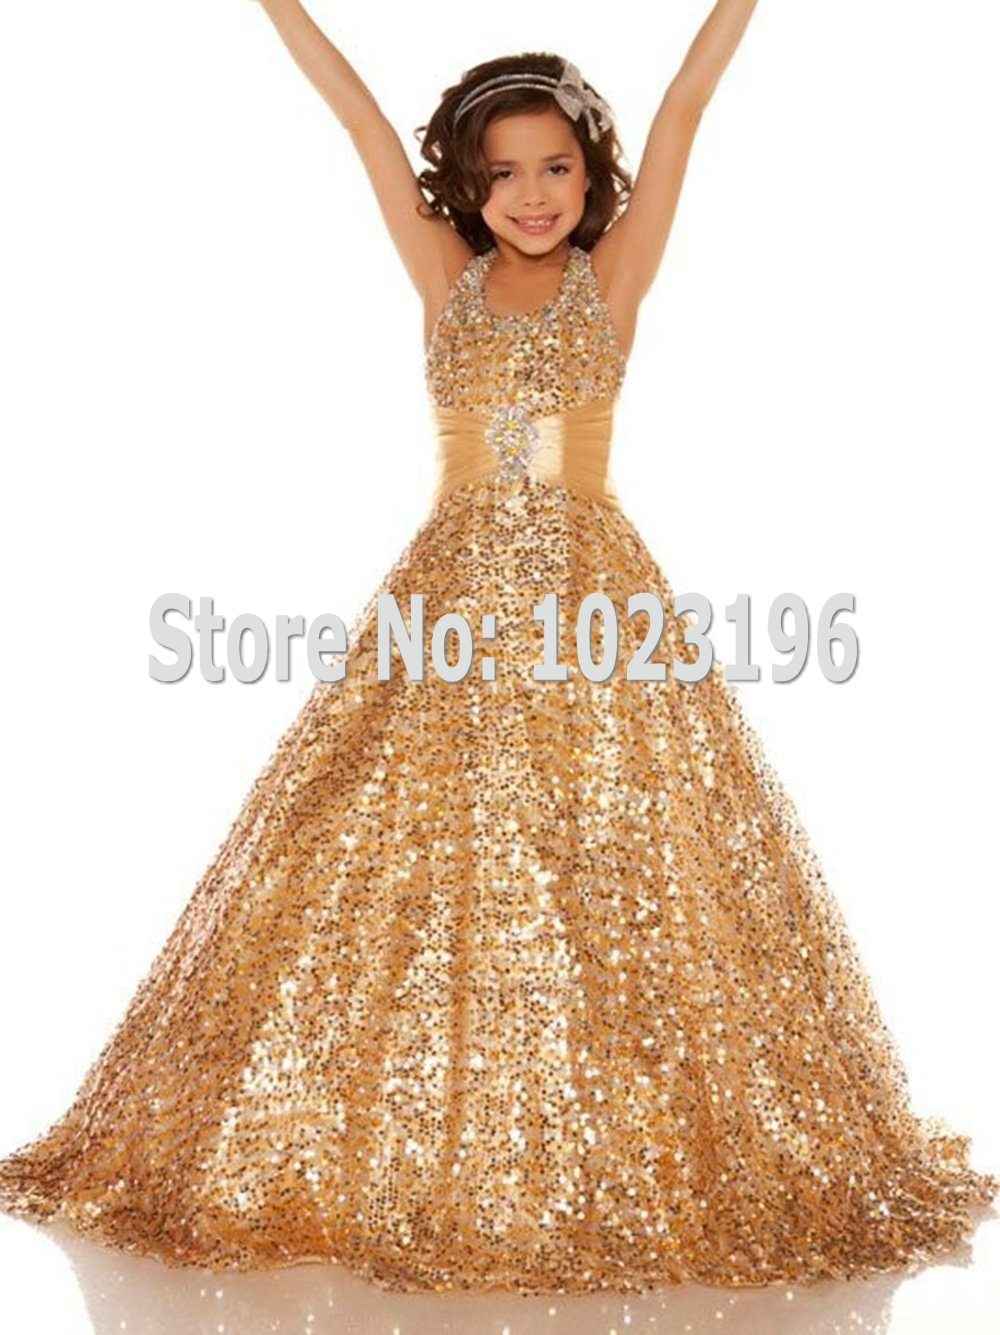 Compare Prices on Gold Flower Girl Dress- Online Shopping/Buy Low ...